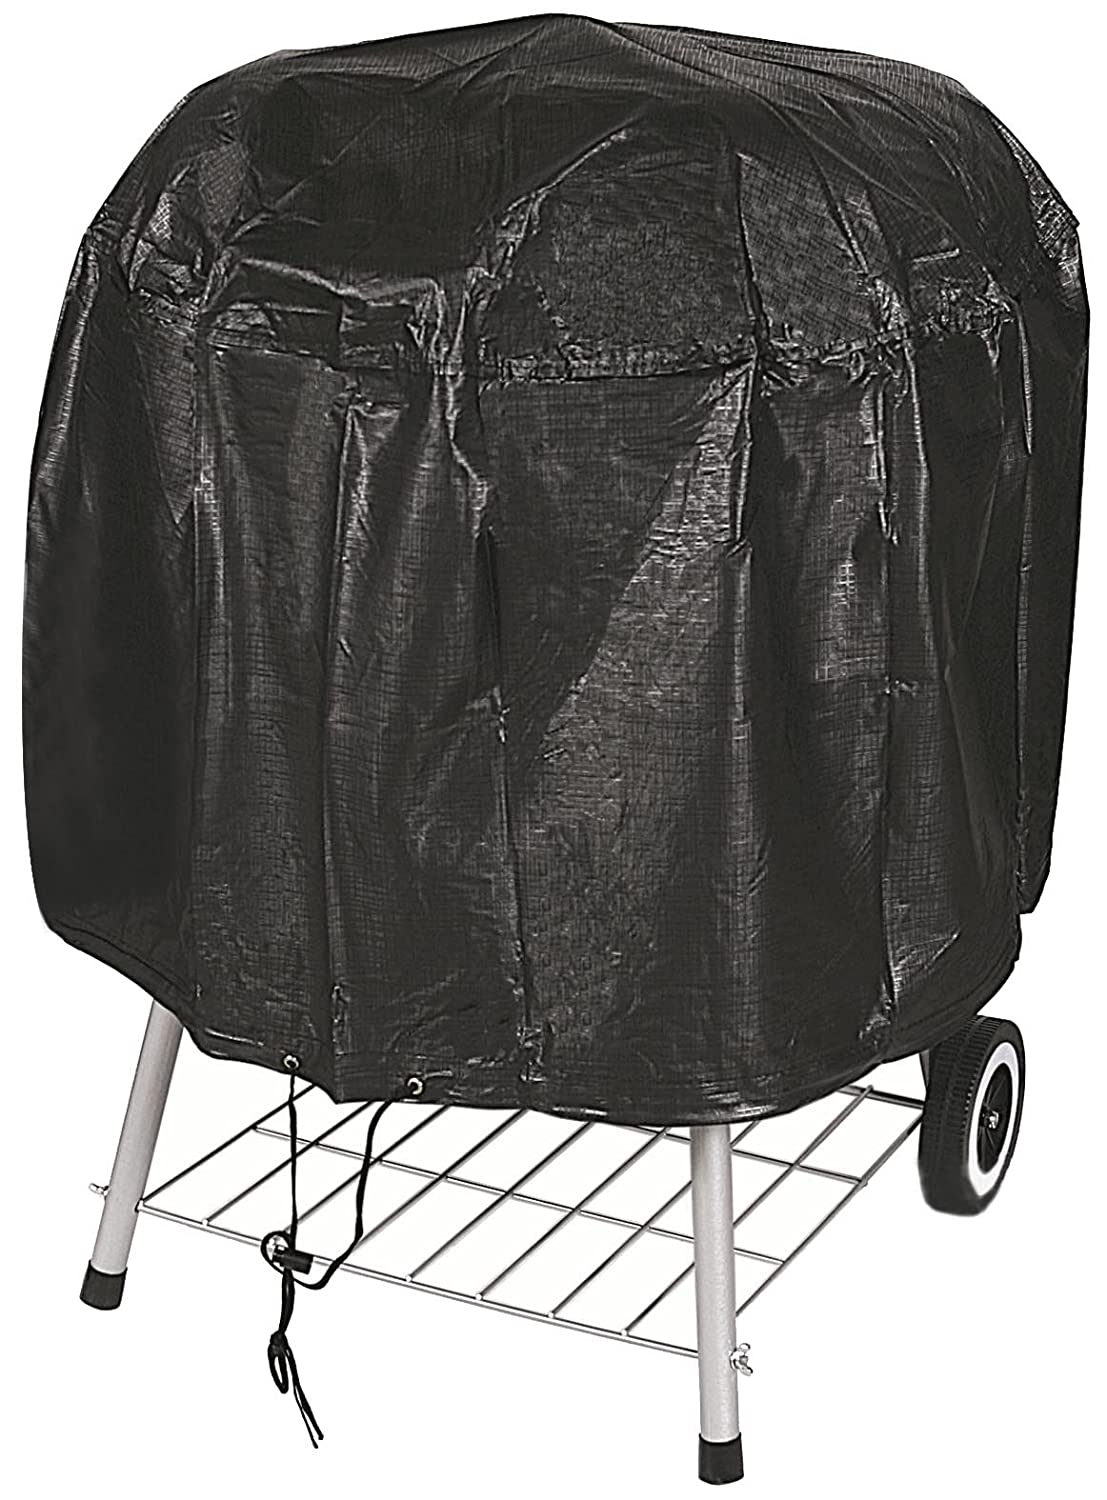 Modern Leisure Kettle Barbeque Cover 7458